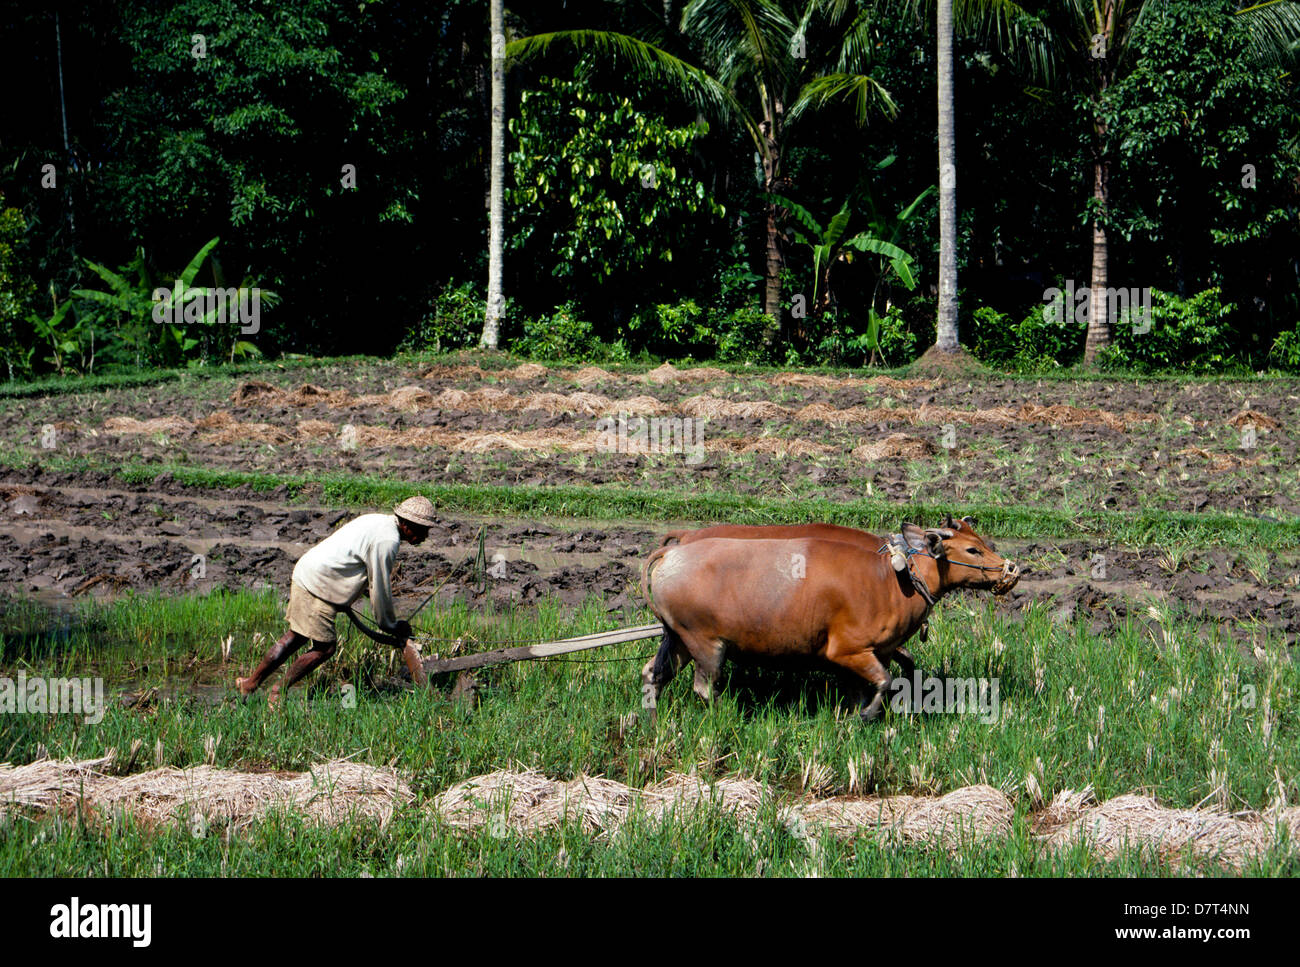 plowing cows stock photos u0026 plowing cows stock images alamy